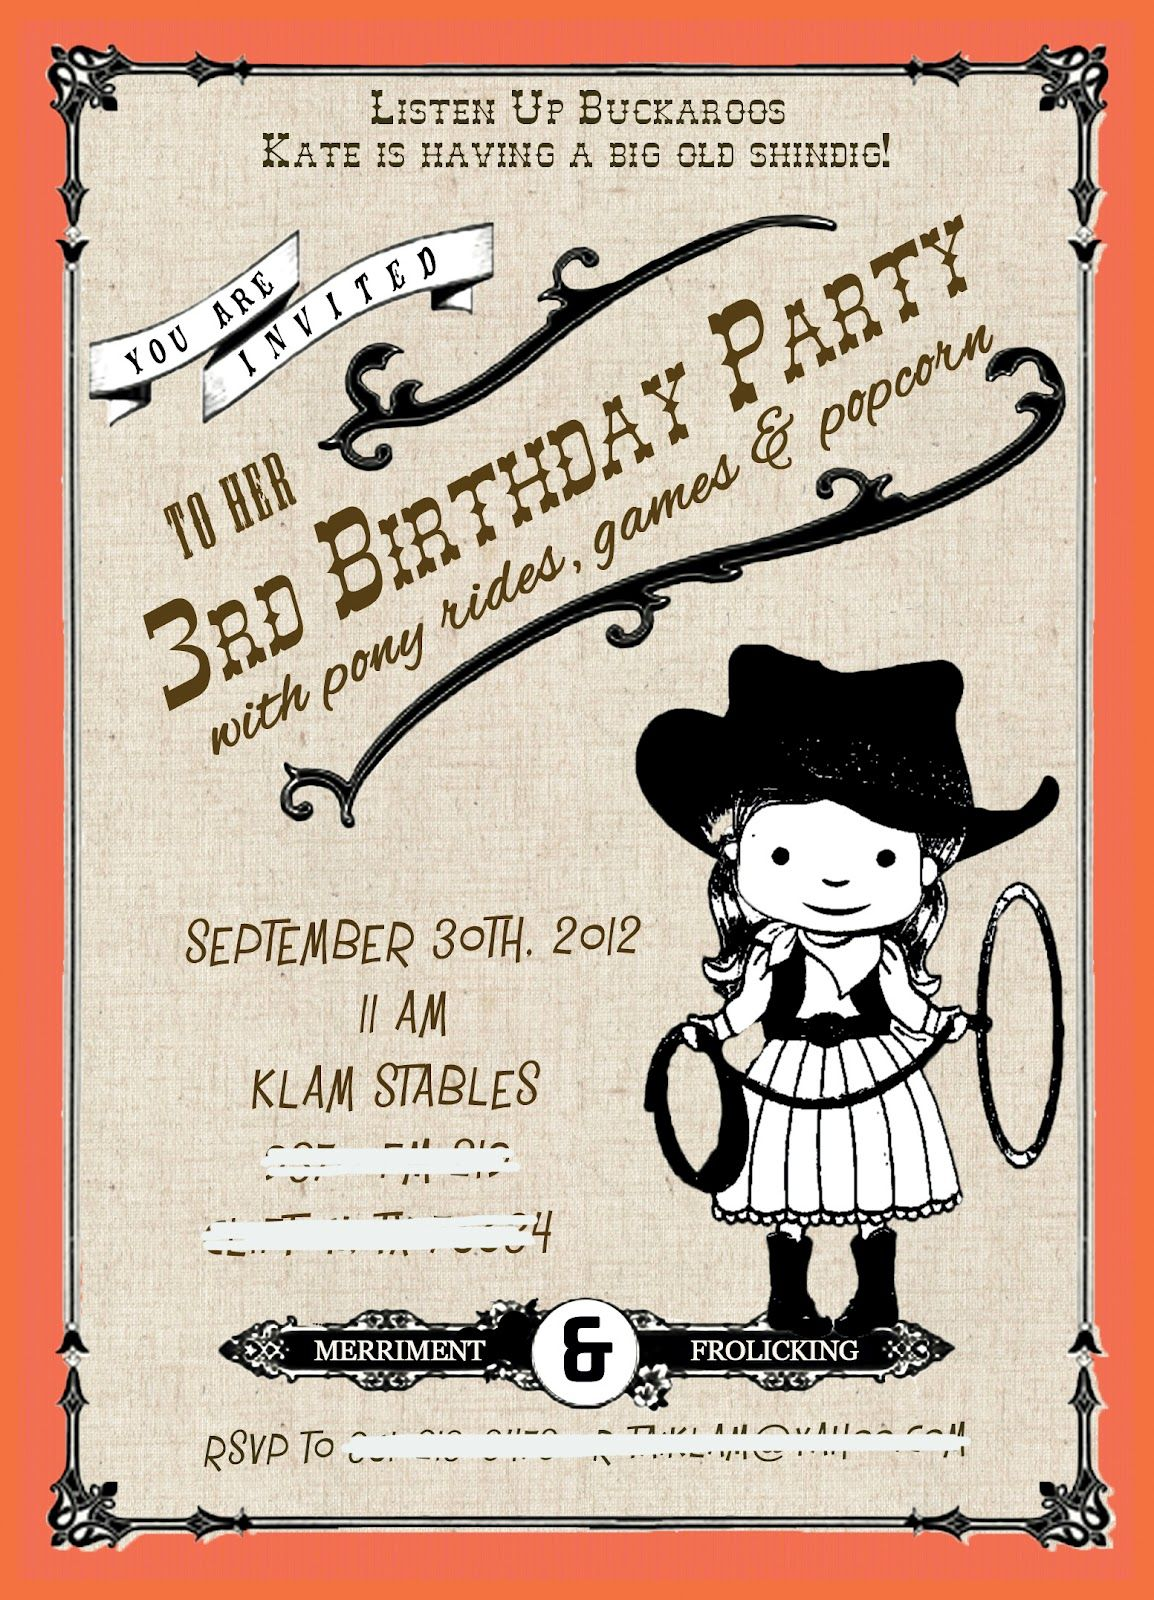 Cowgirl Birthday Party Invites   July\'s event   Pinterest   Cowgirl ...